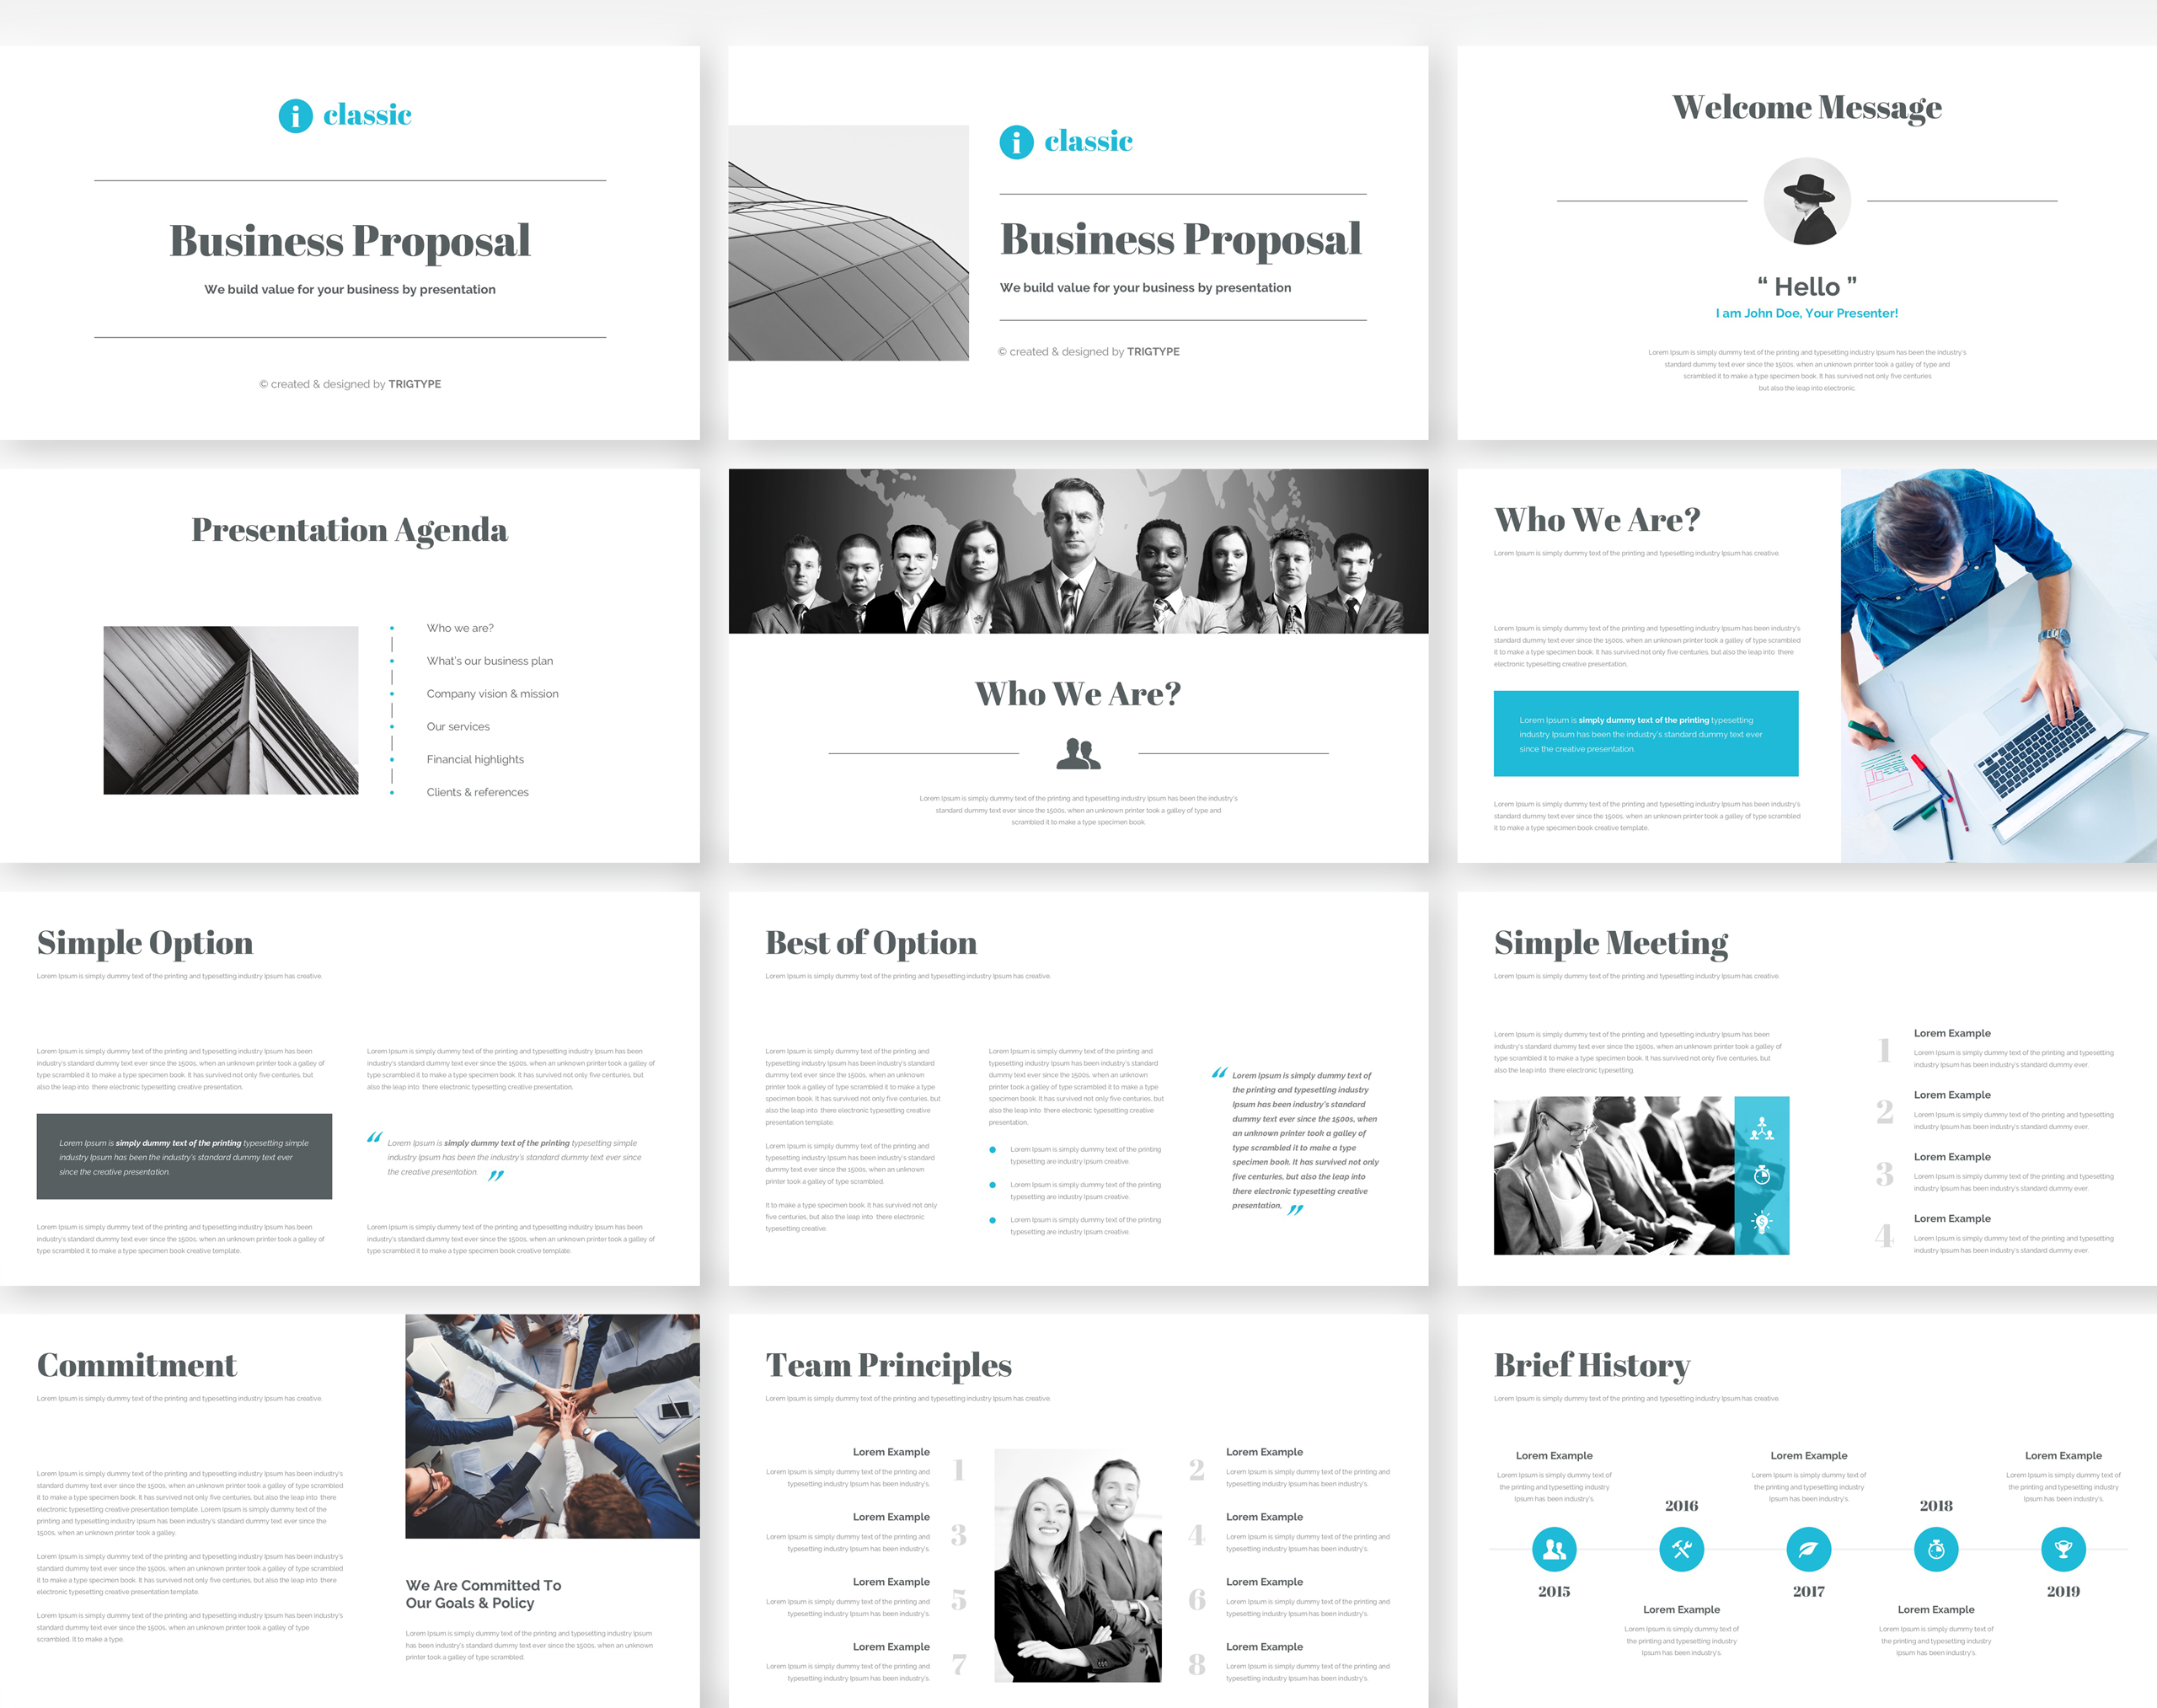 Business Proposal Google Slides Template example image 2